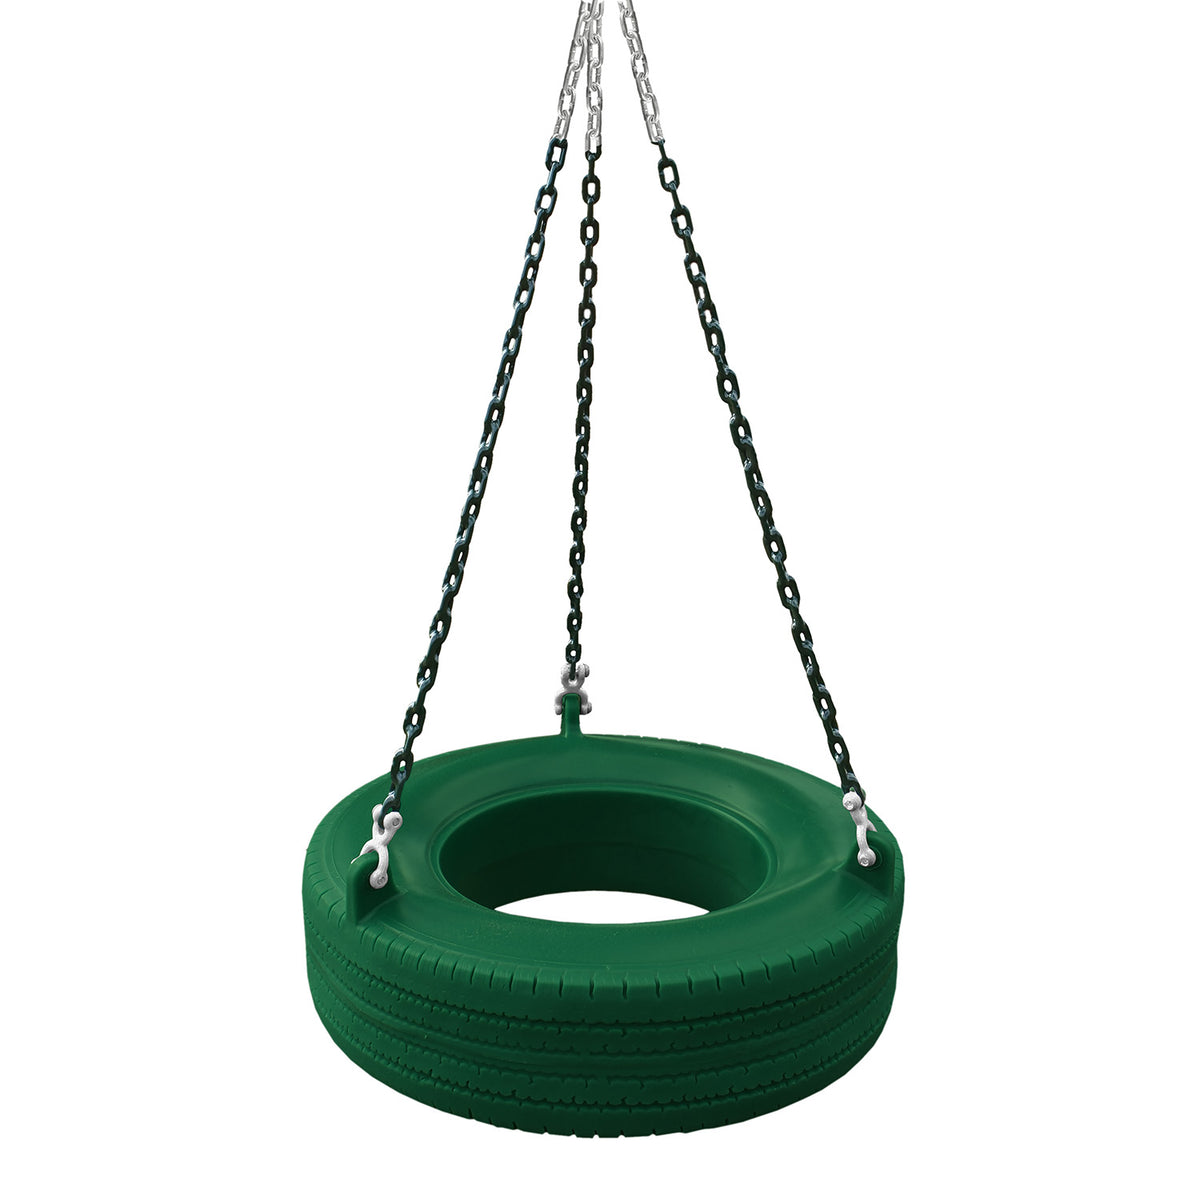 Gorilla-Playsets-Tire-Swing-Green-White-Back